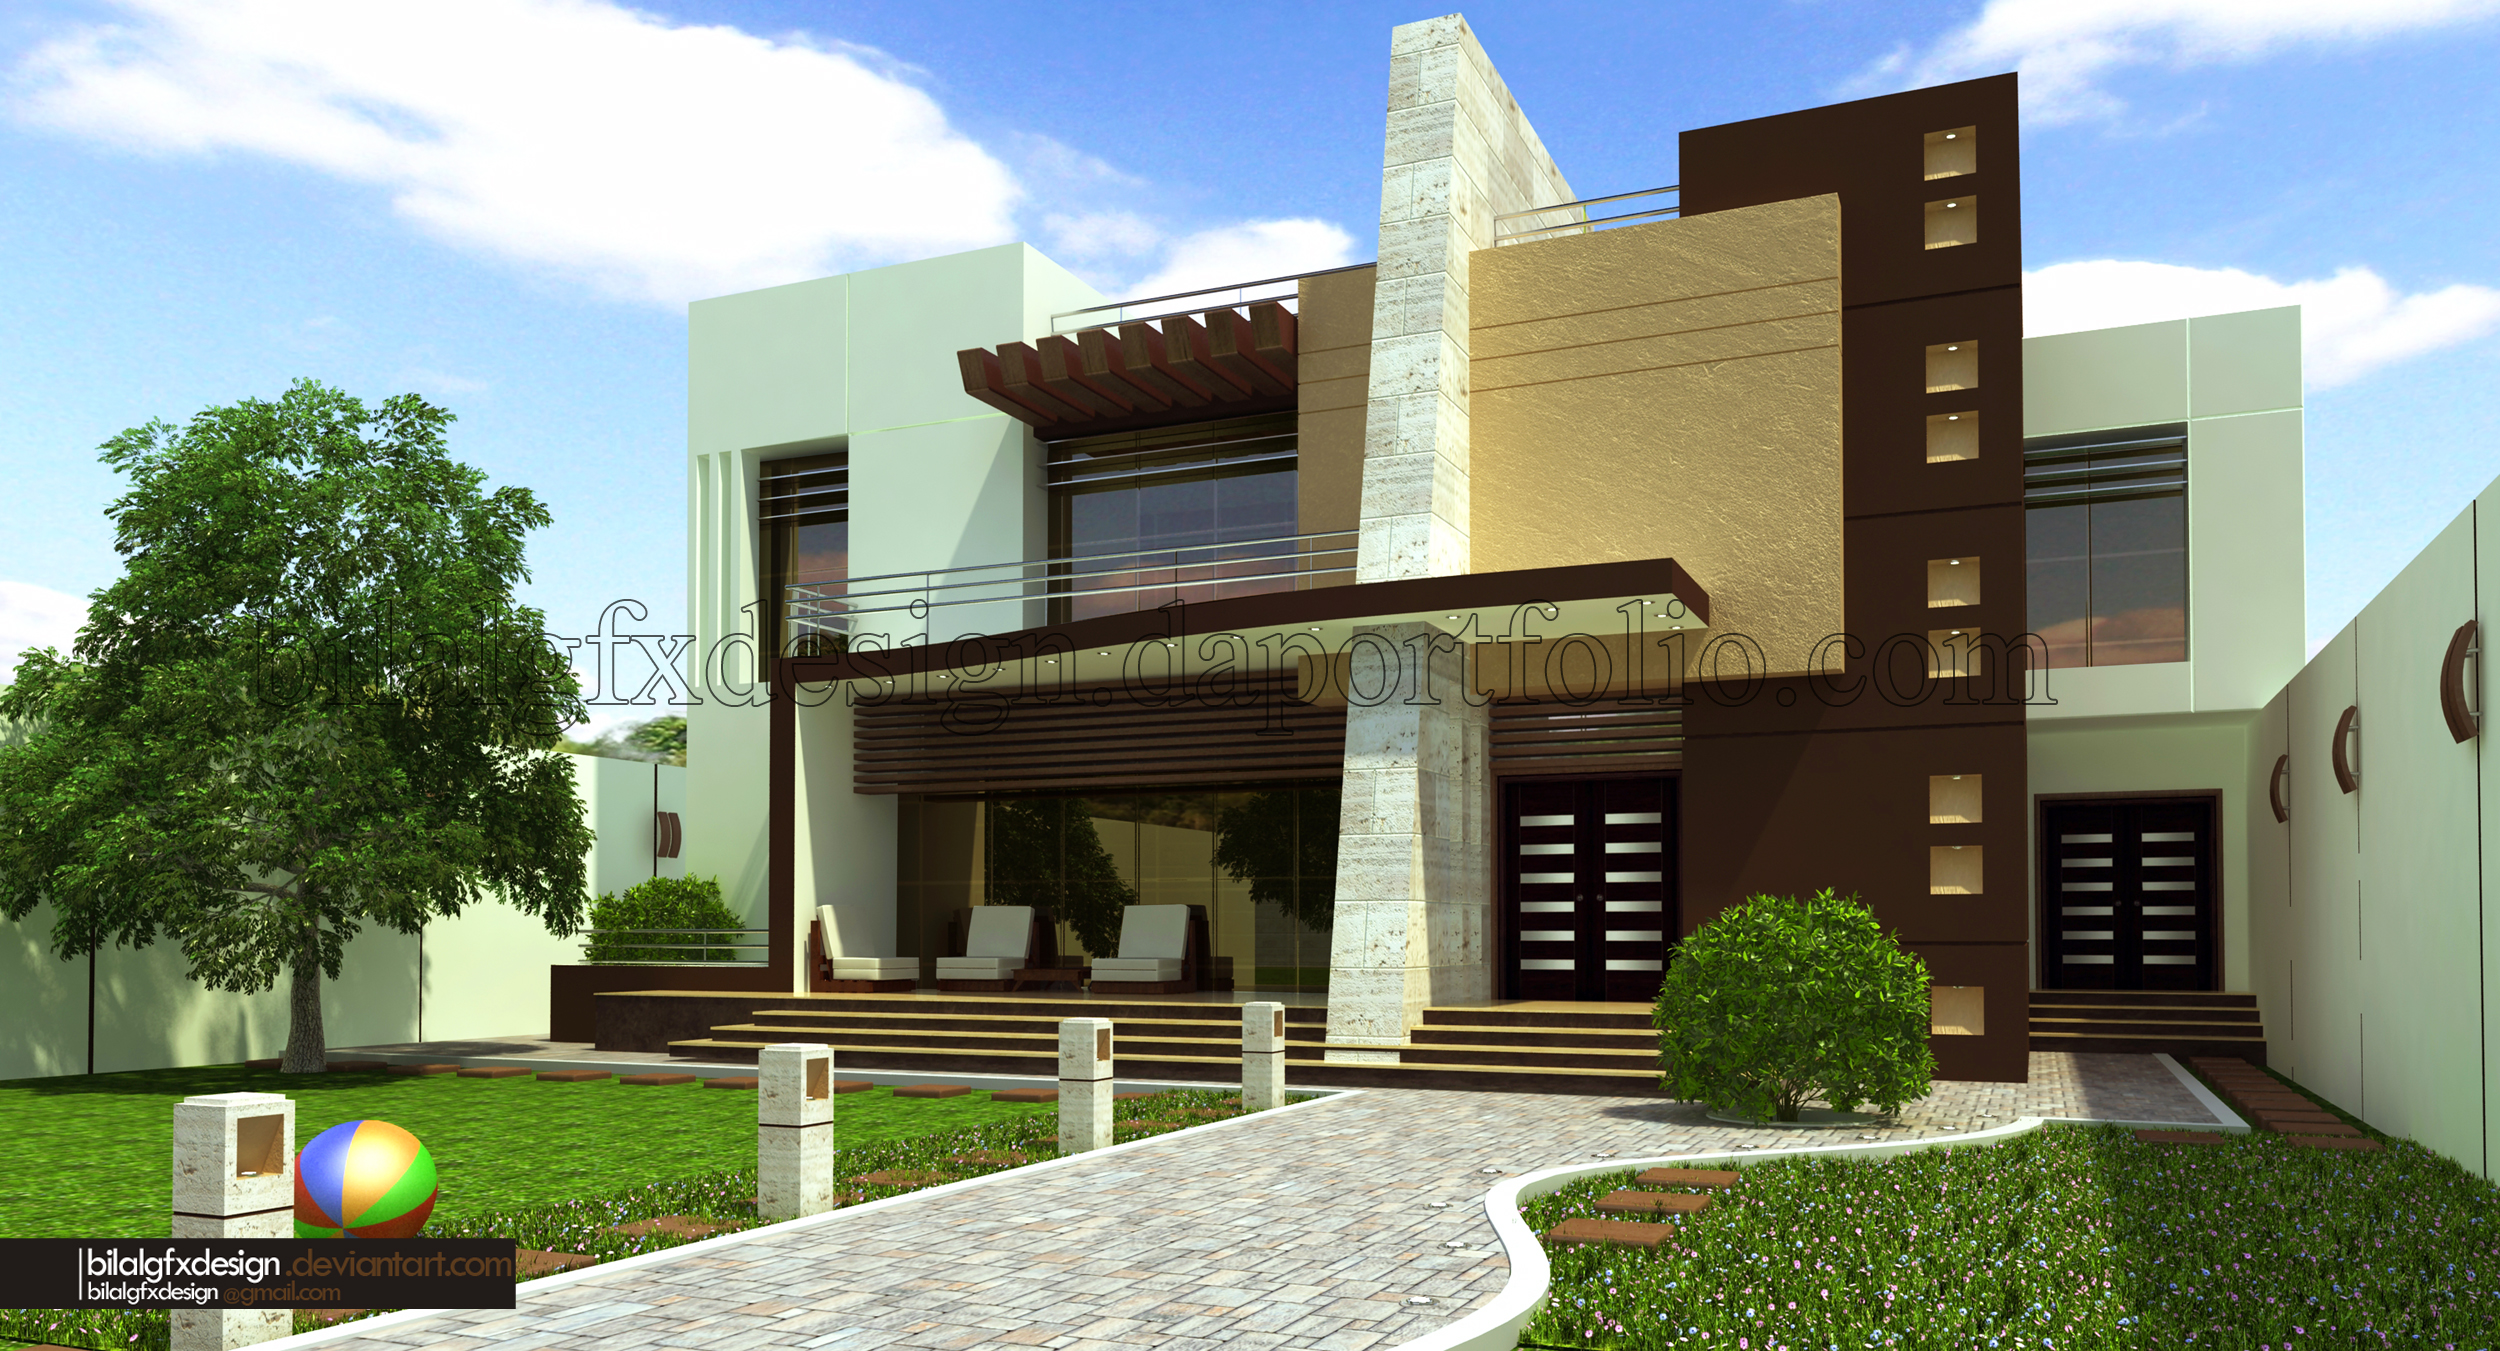 Modern villa 1 by bilalgfxdesign on deviantart for Architecture villa design